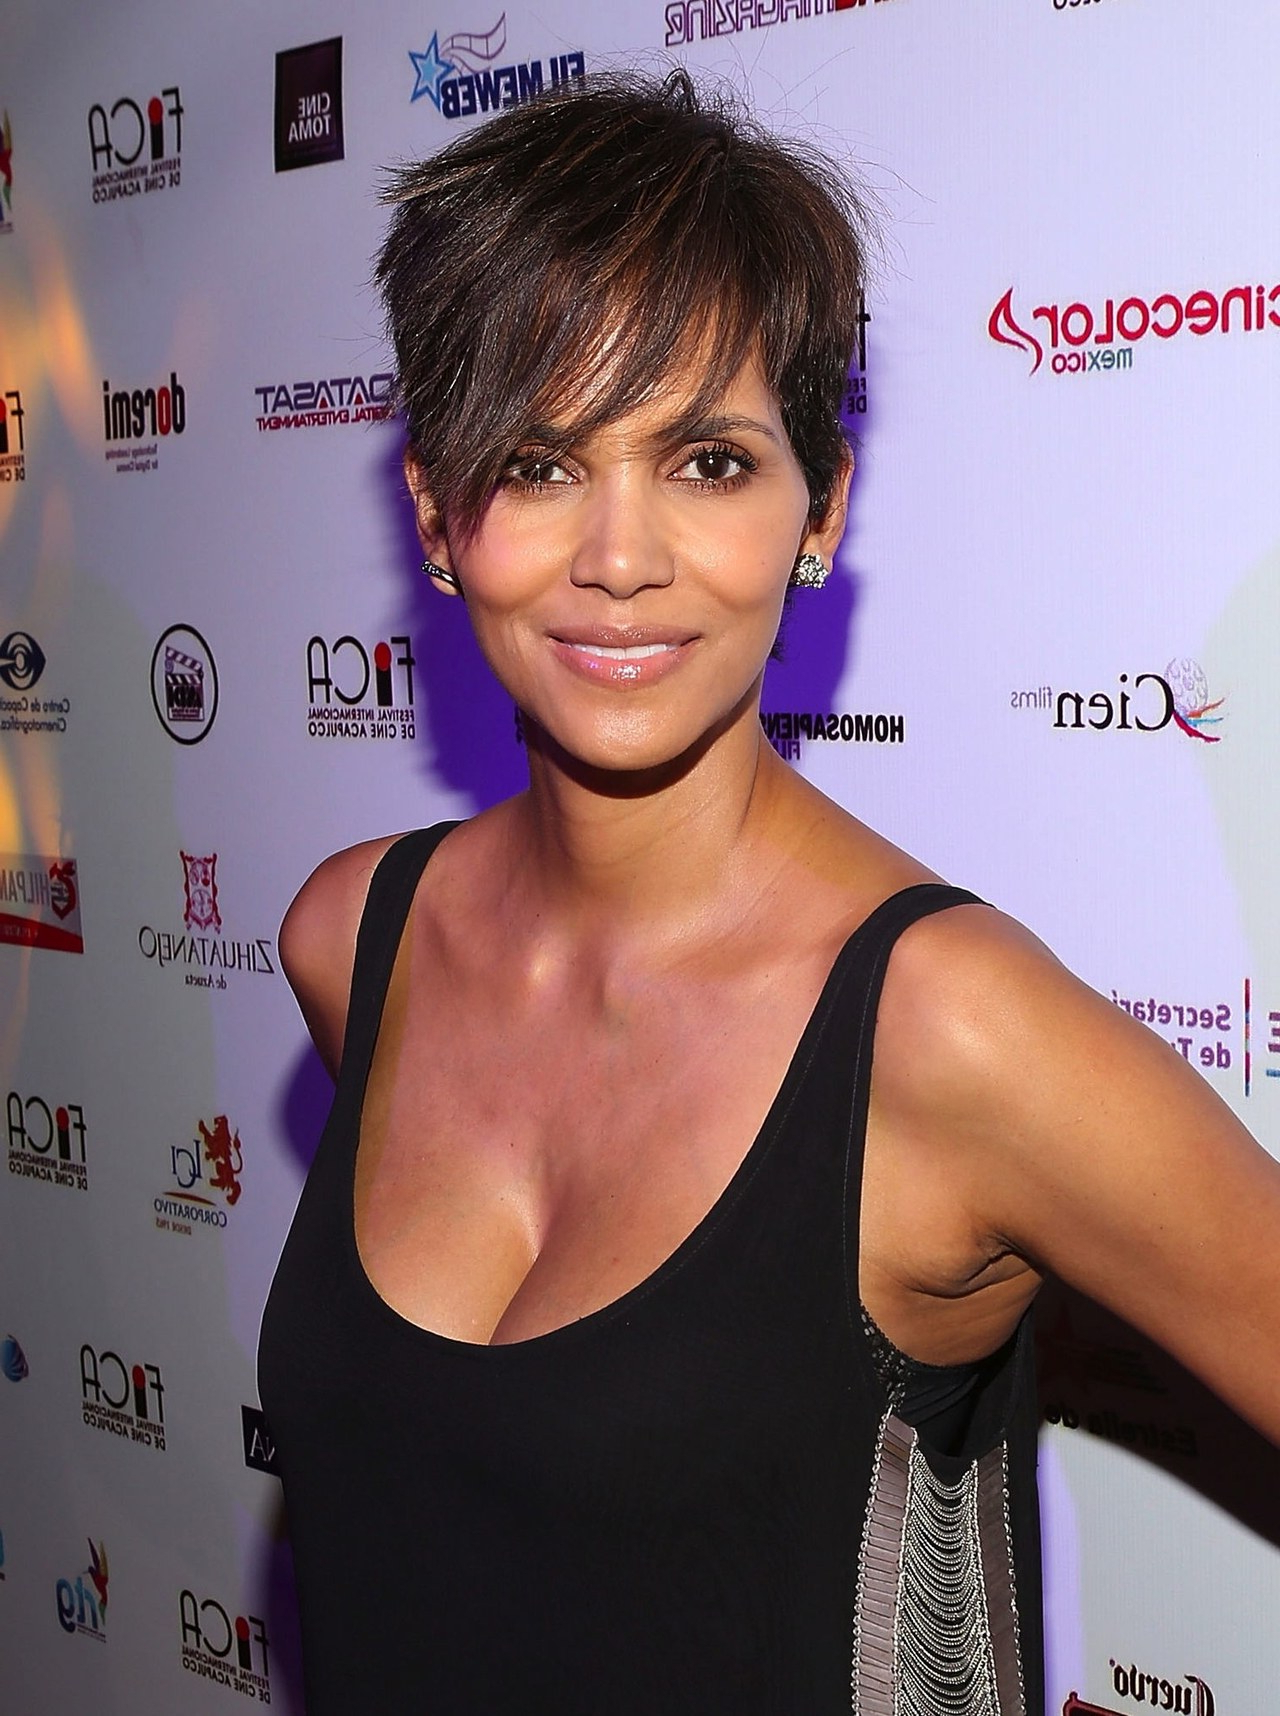 6 Reasons Guys Like Girls With Short Hair | Glamour With Short Haircuts That Cover Your Ears (View 7 of 25)